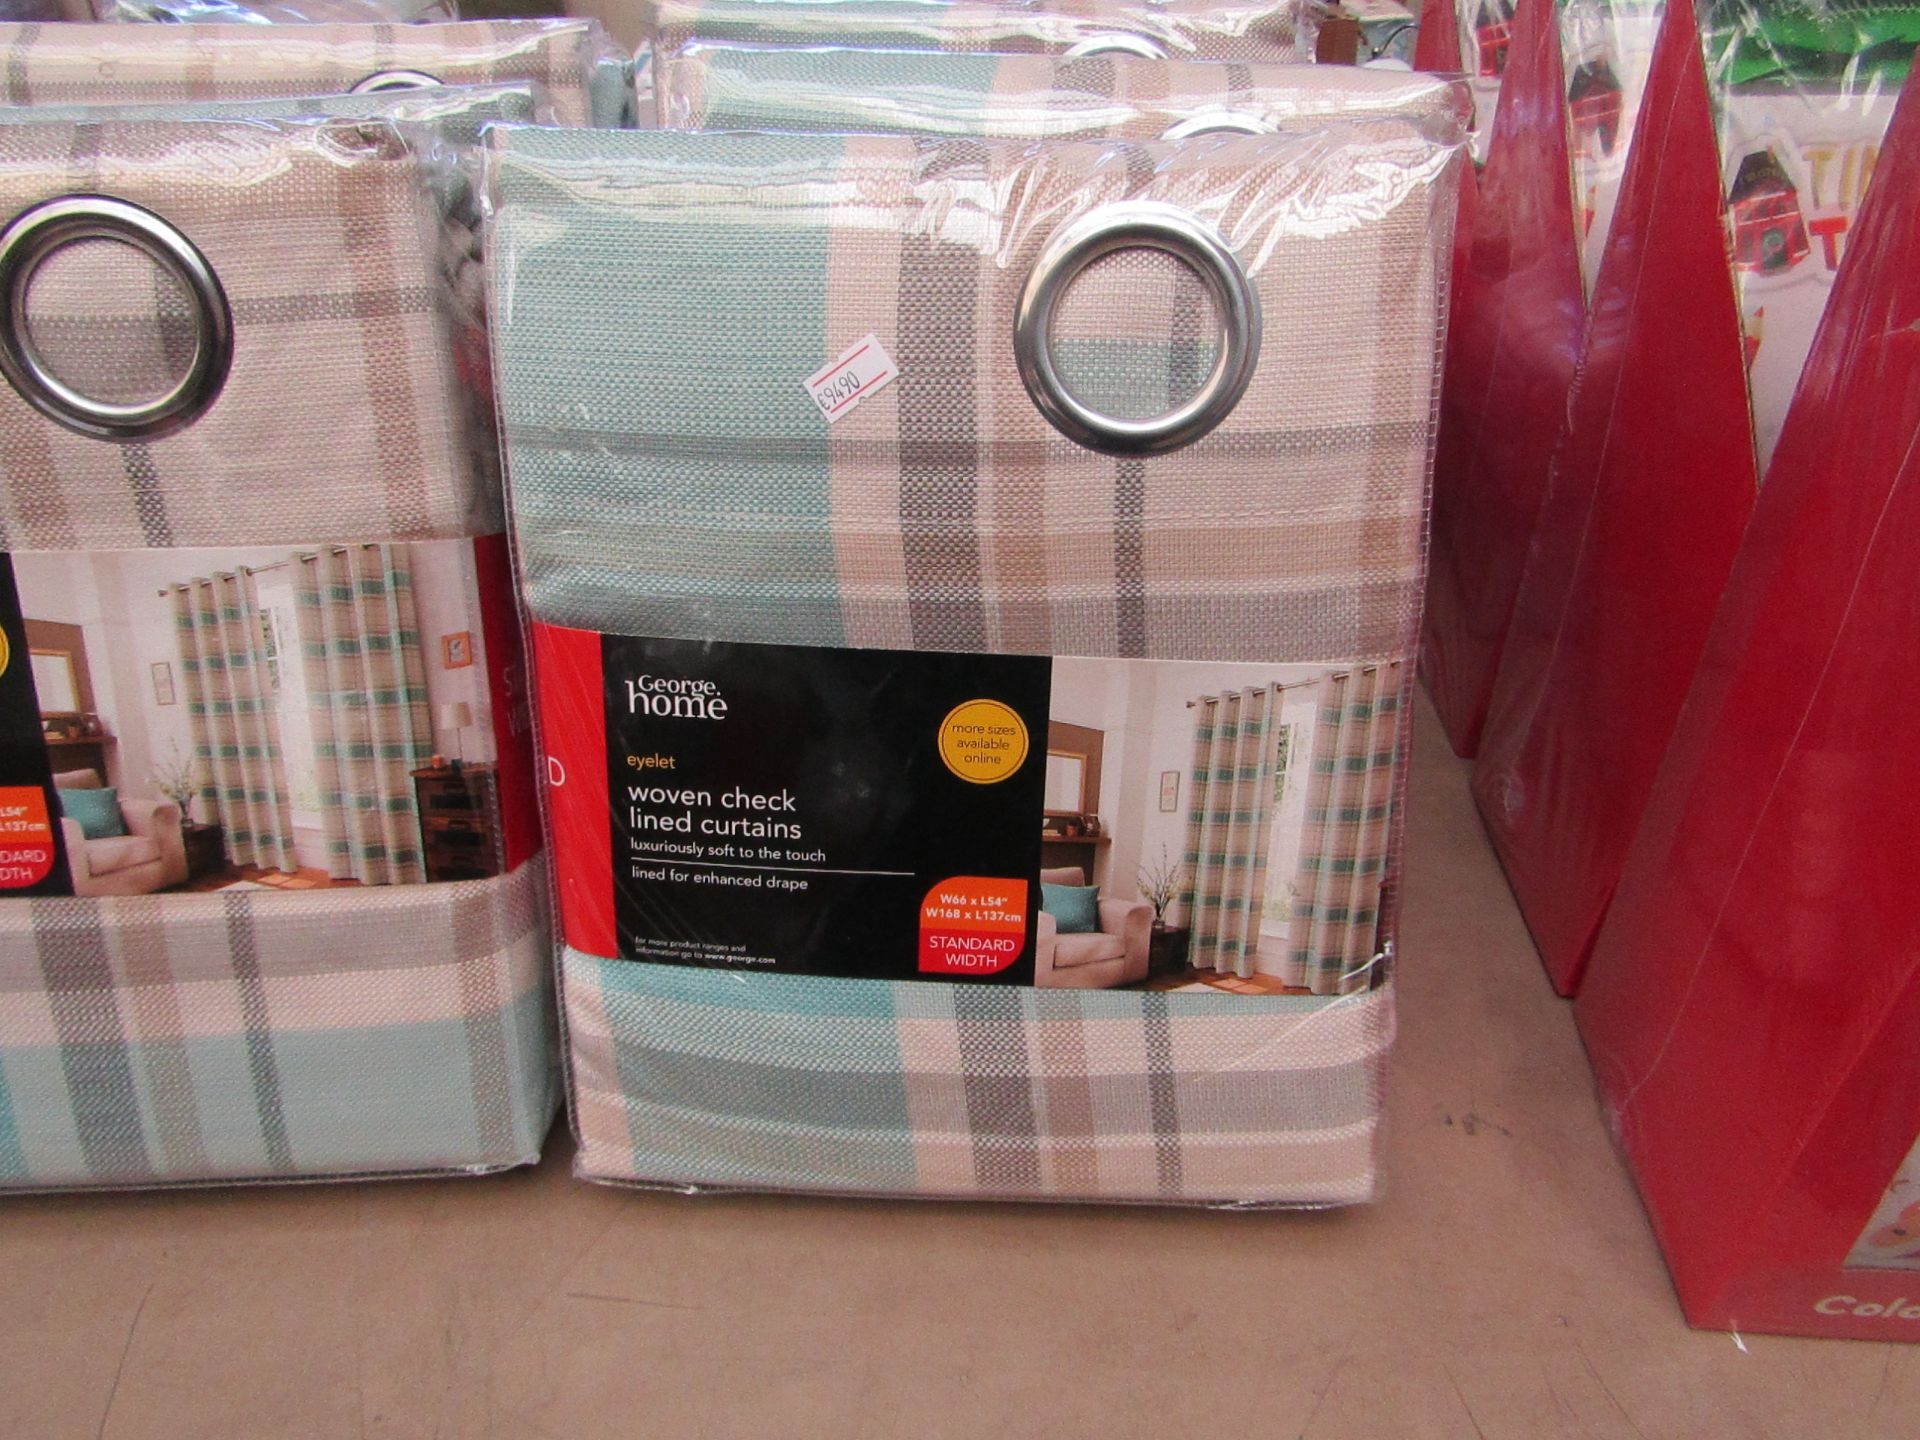 "Lot 2 - George Home woven checkered lined curtains, W 66 x L 54"", new and packaged."